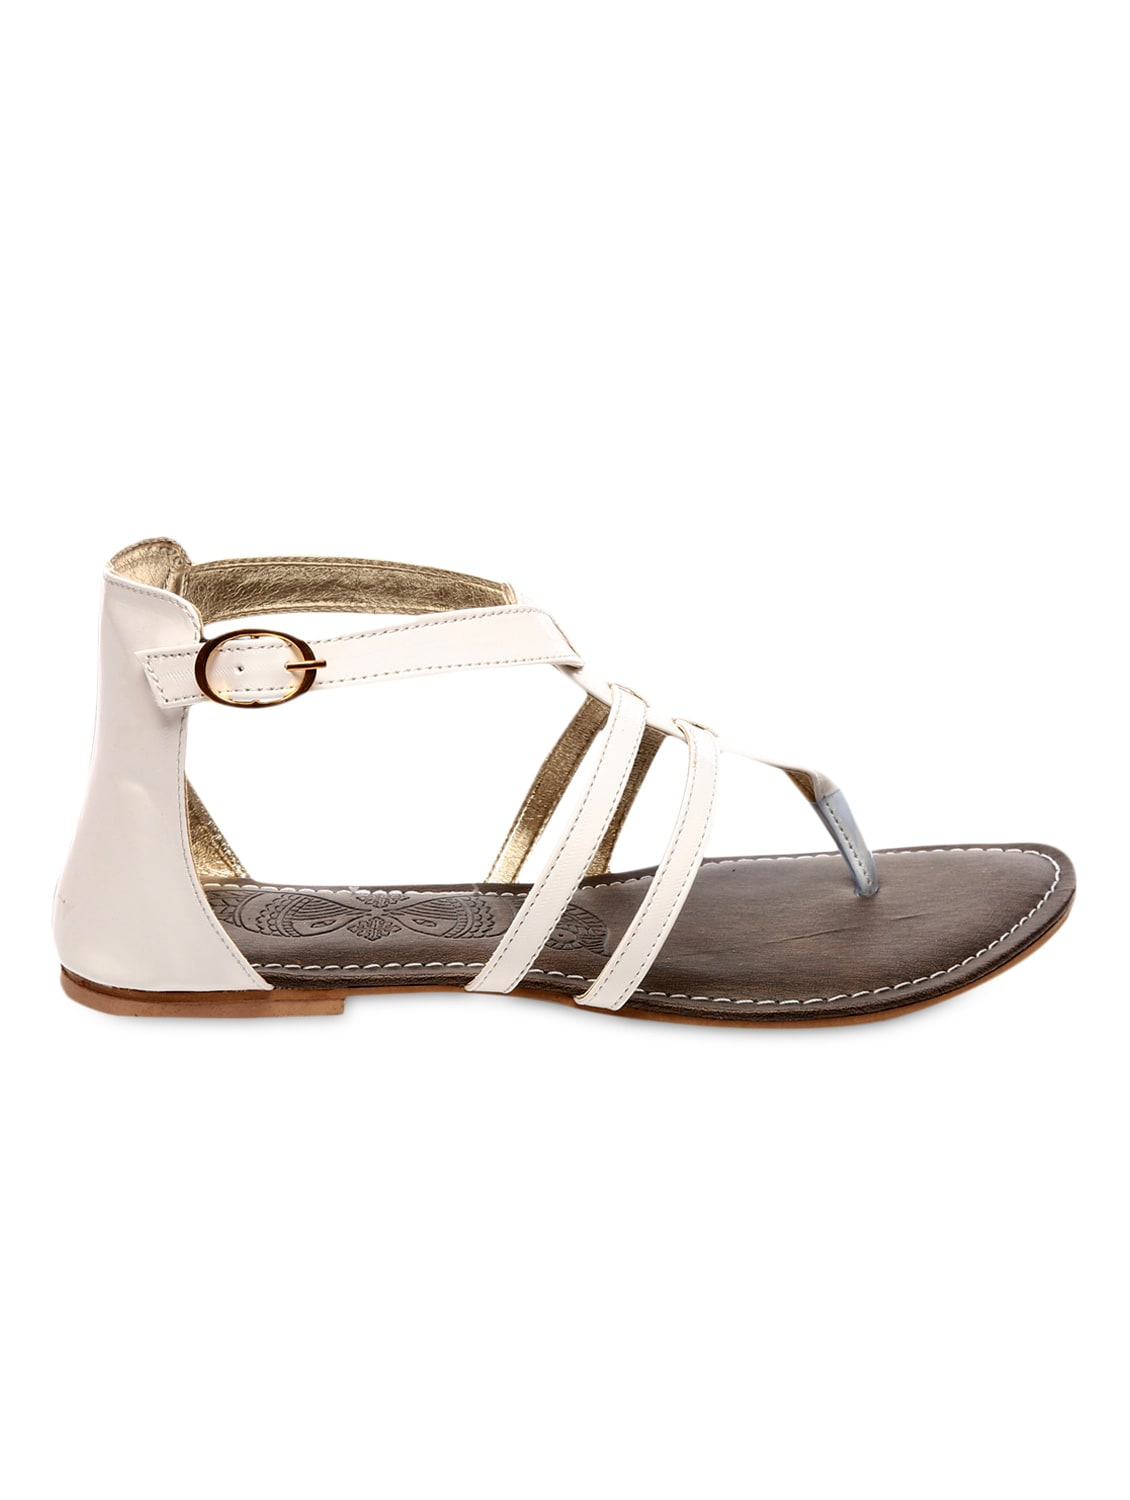 White faux leather sandals available at Limeroad for Rs.499